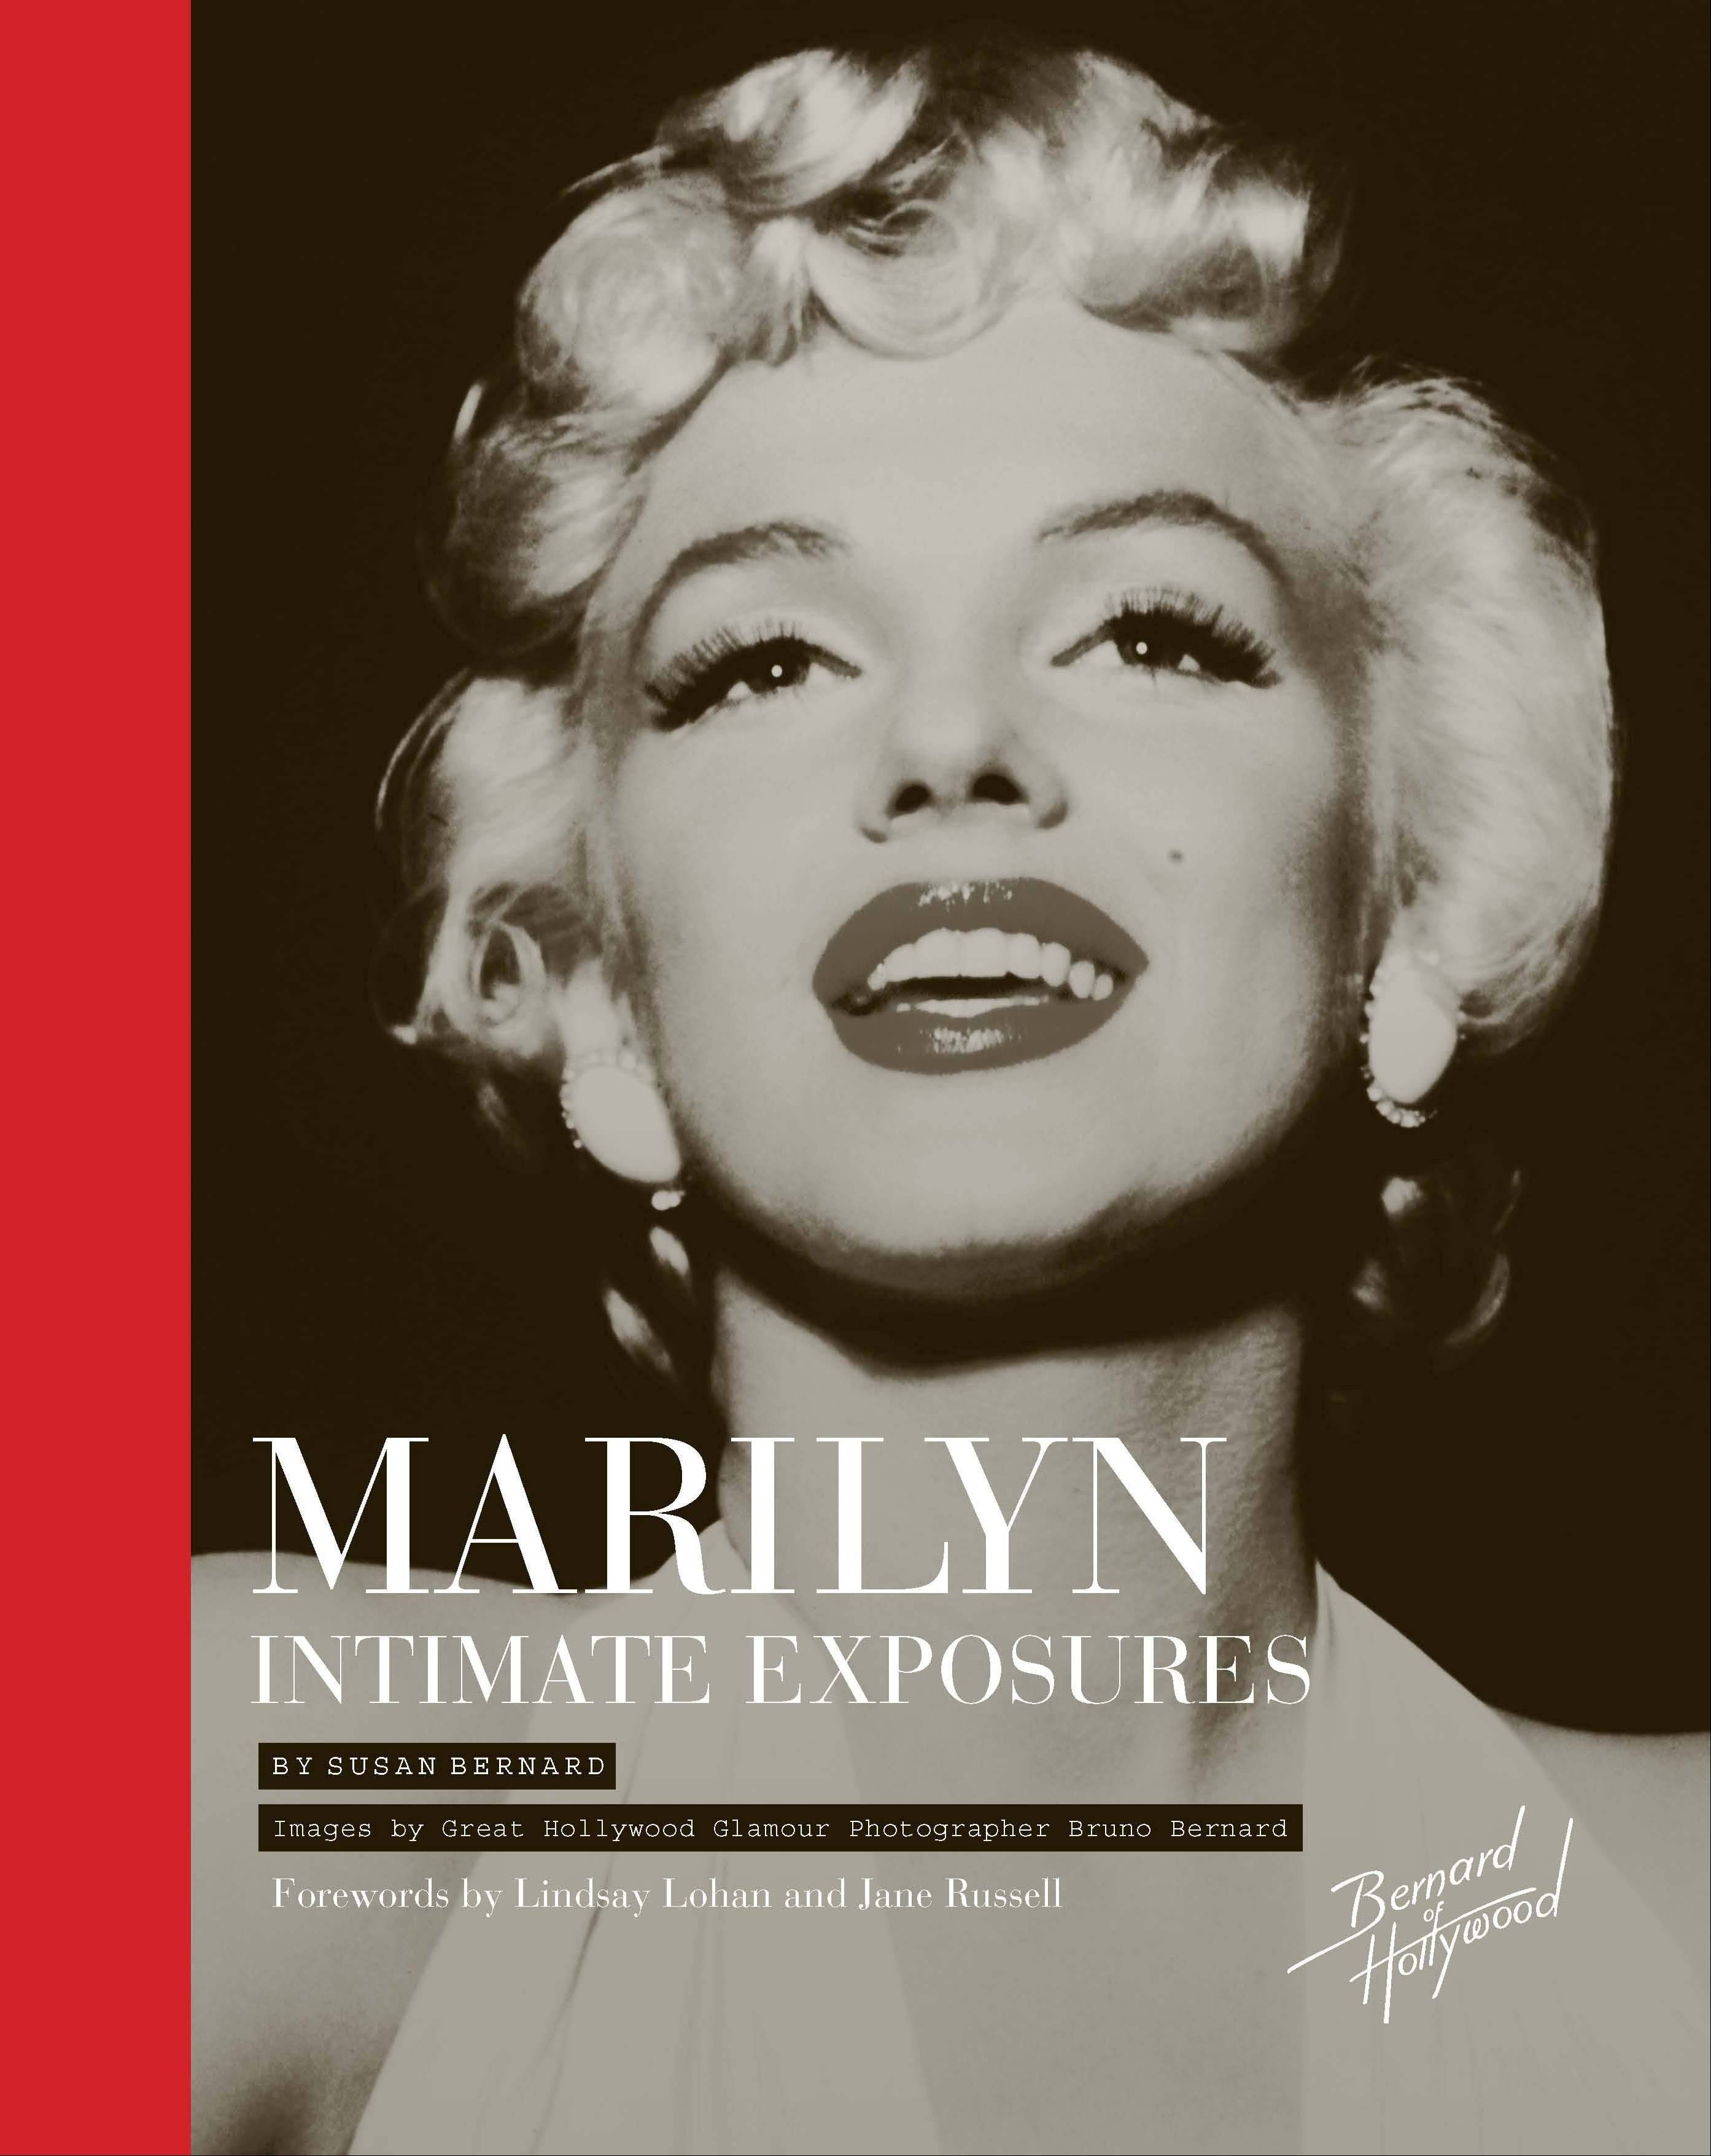 """Marilyn Intimate Exposures"" by Susan Bernard"